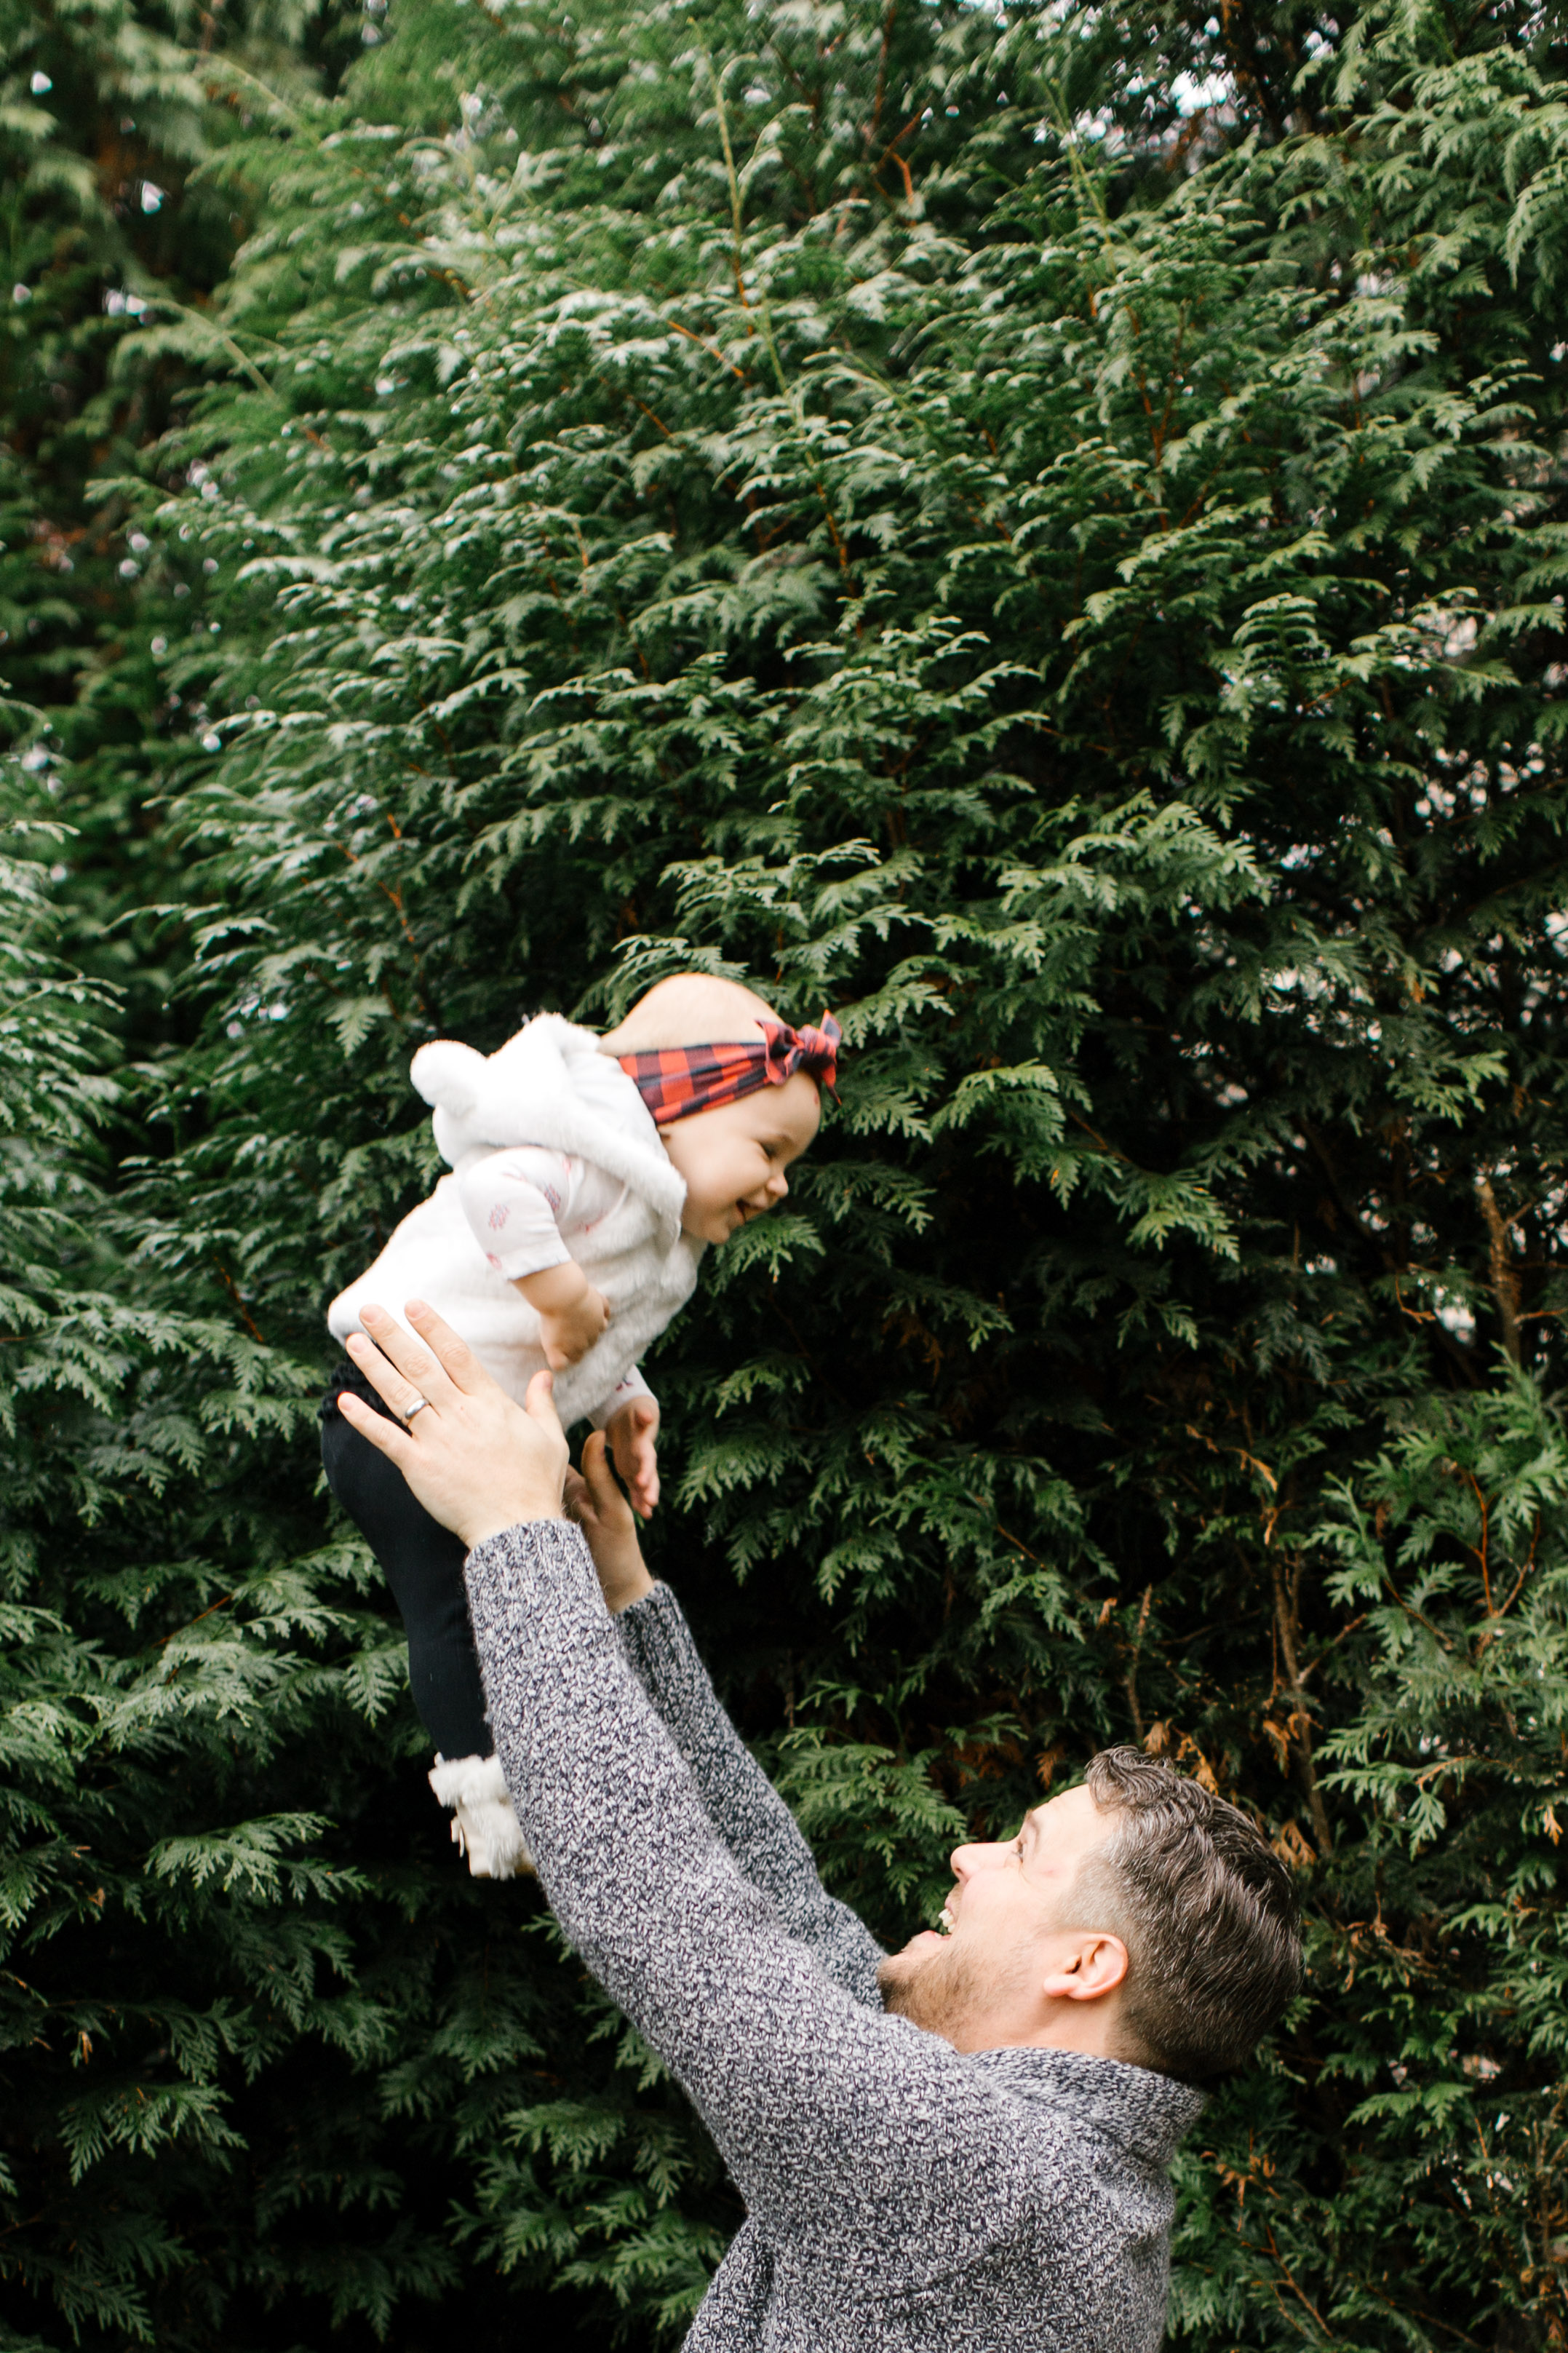 Natural light sweet family at home lifestlyle photography seattle bellevue kirkland WA Chelsea Macor Photography-28.jpg